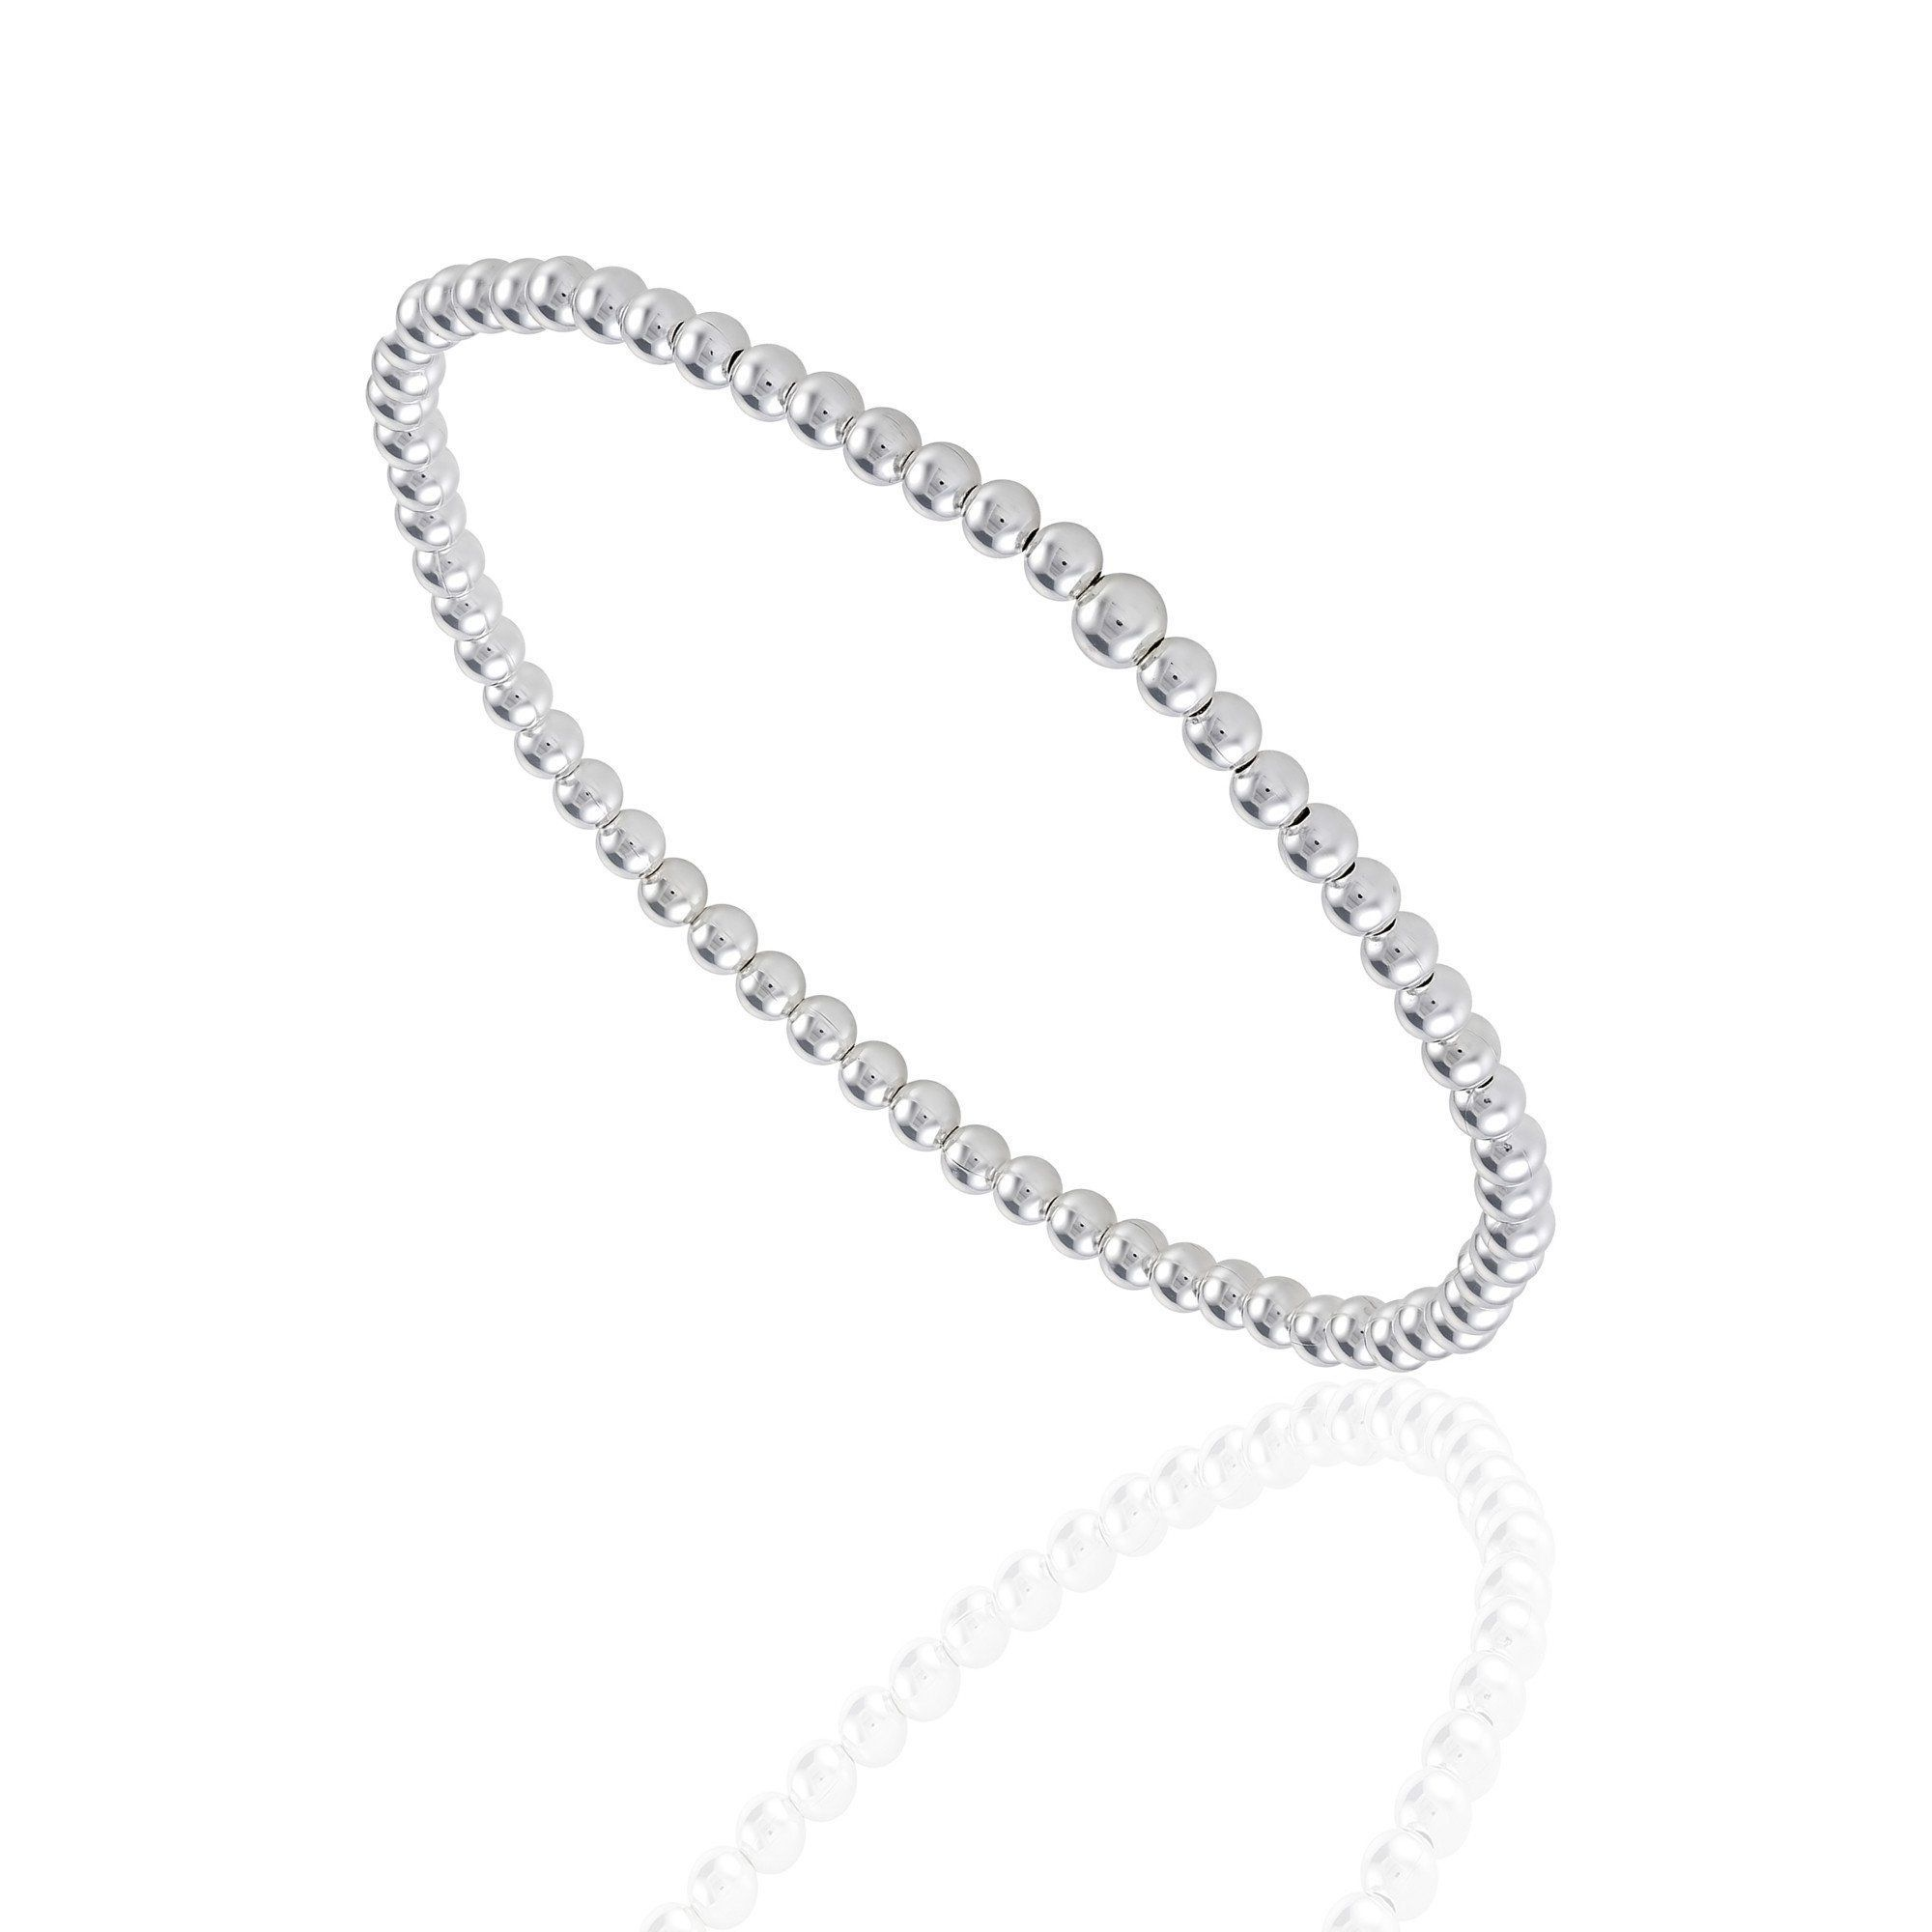 Small Sterling Silver Balls On An Elastic Wire Make This